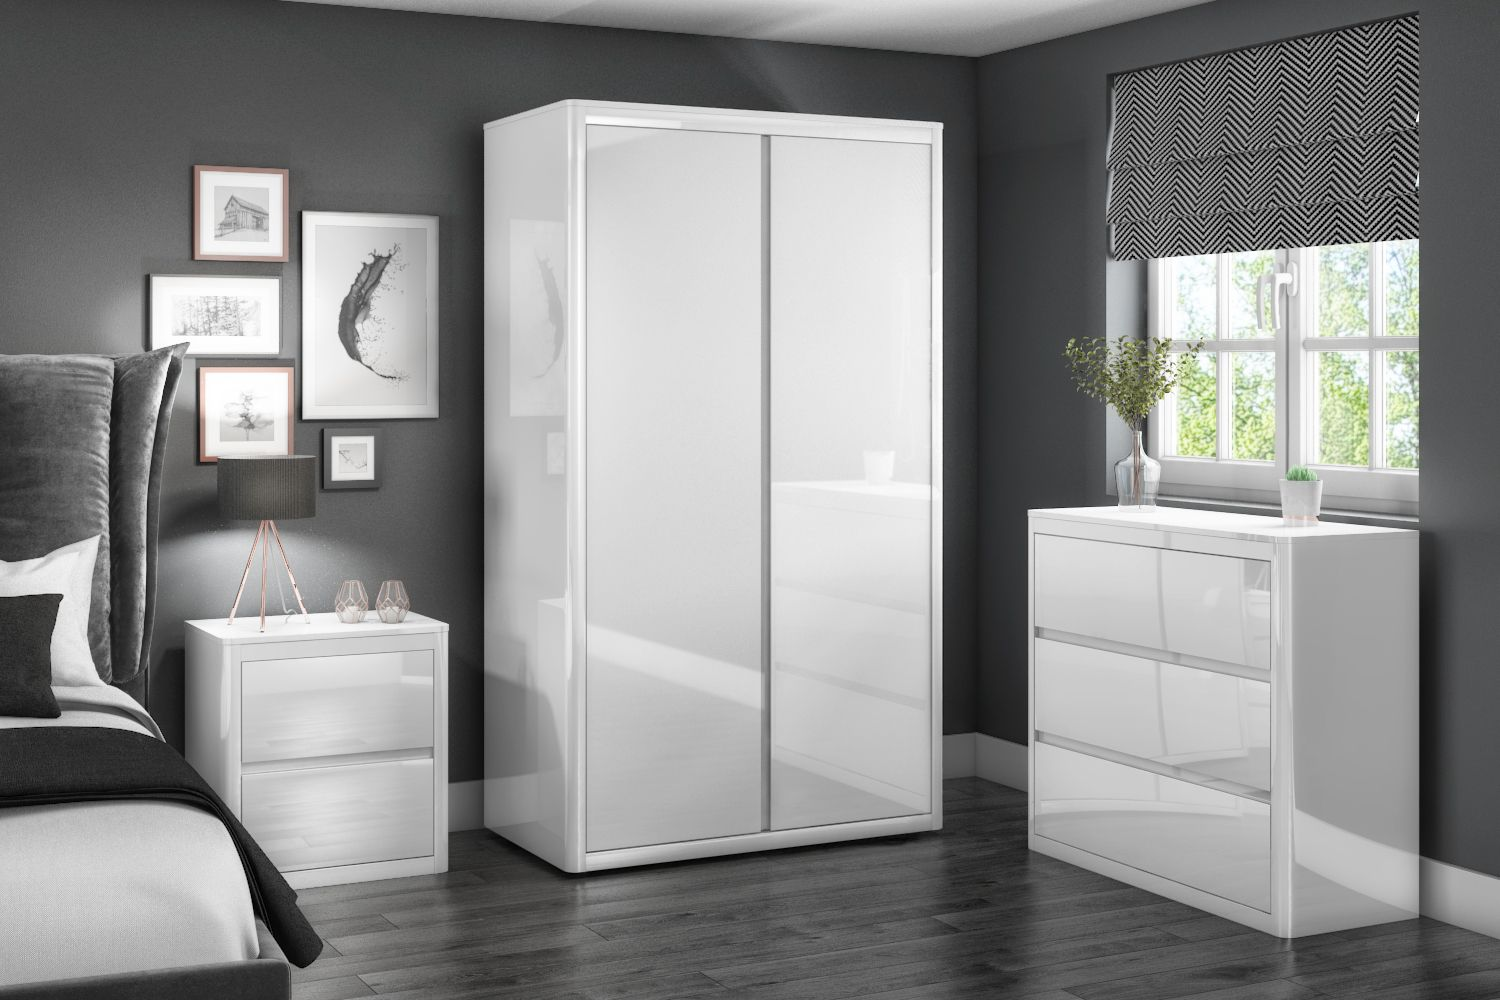 Ikea Bedroom Furniture White Gloss – TRENDECORS